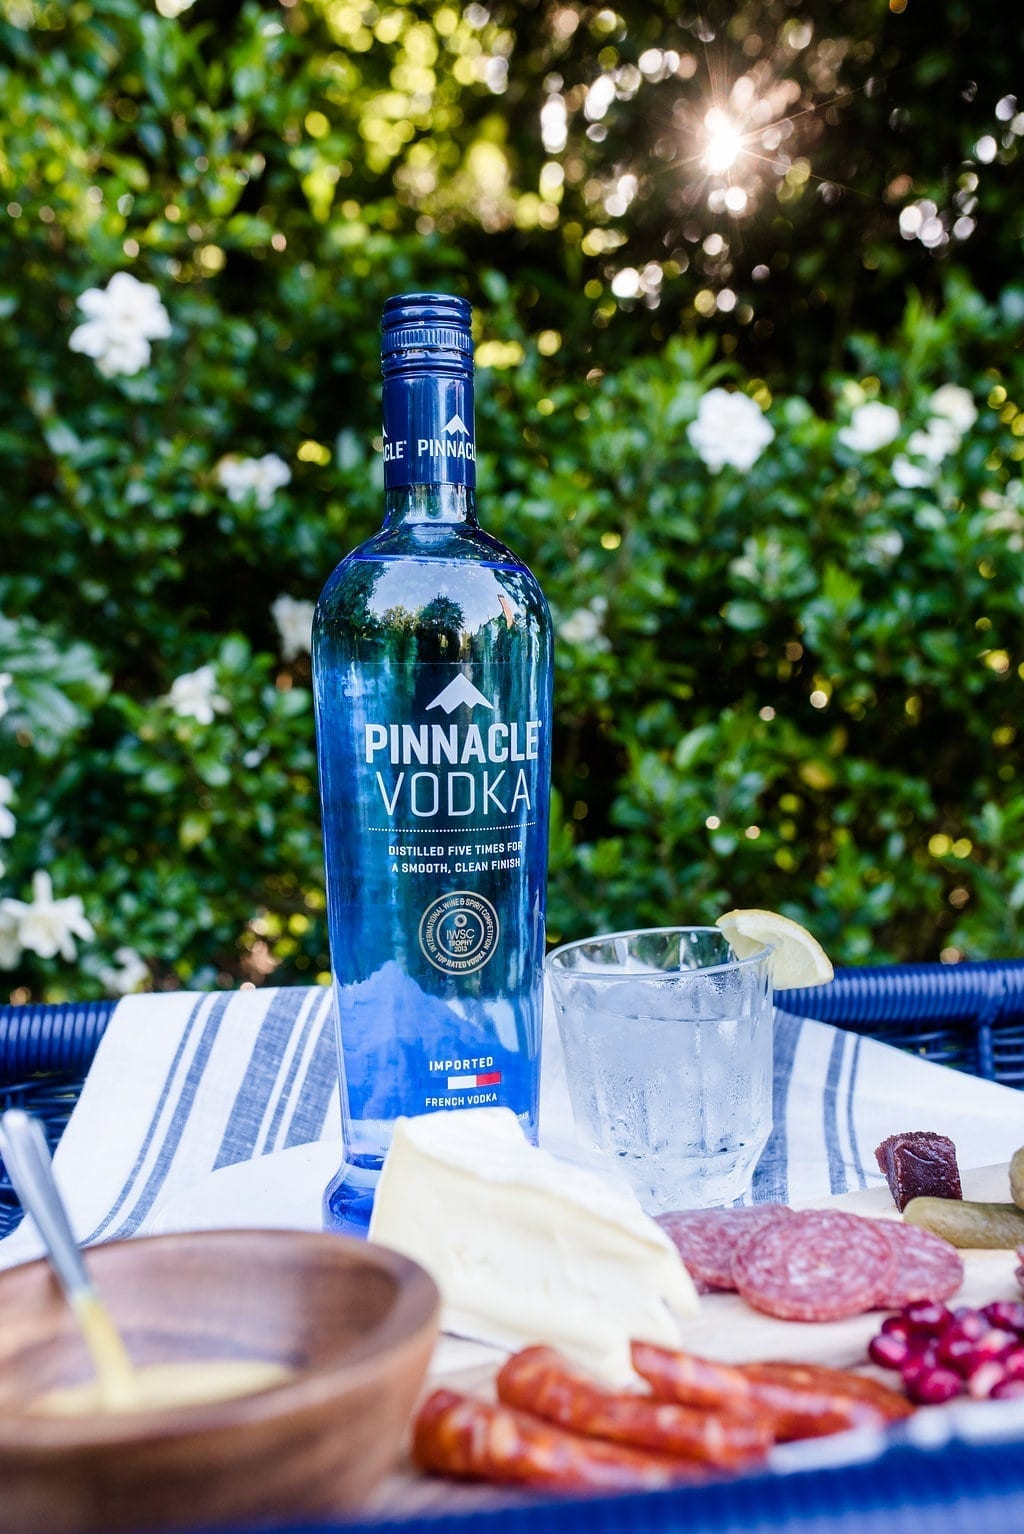 Review of Pinnacle Vodka. French Vodka and party tips for garden party.